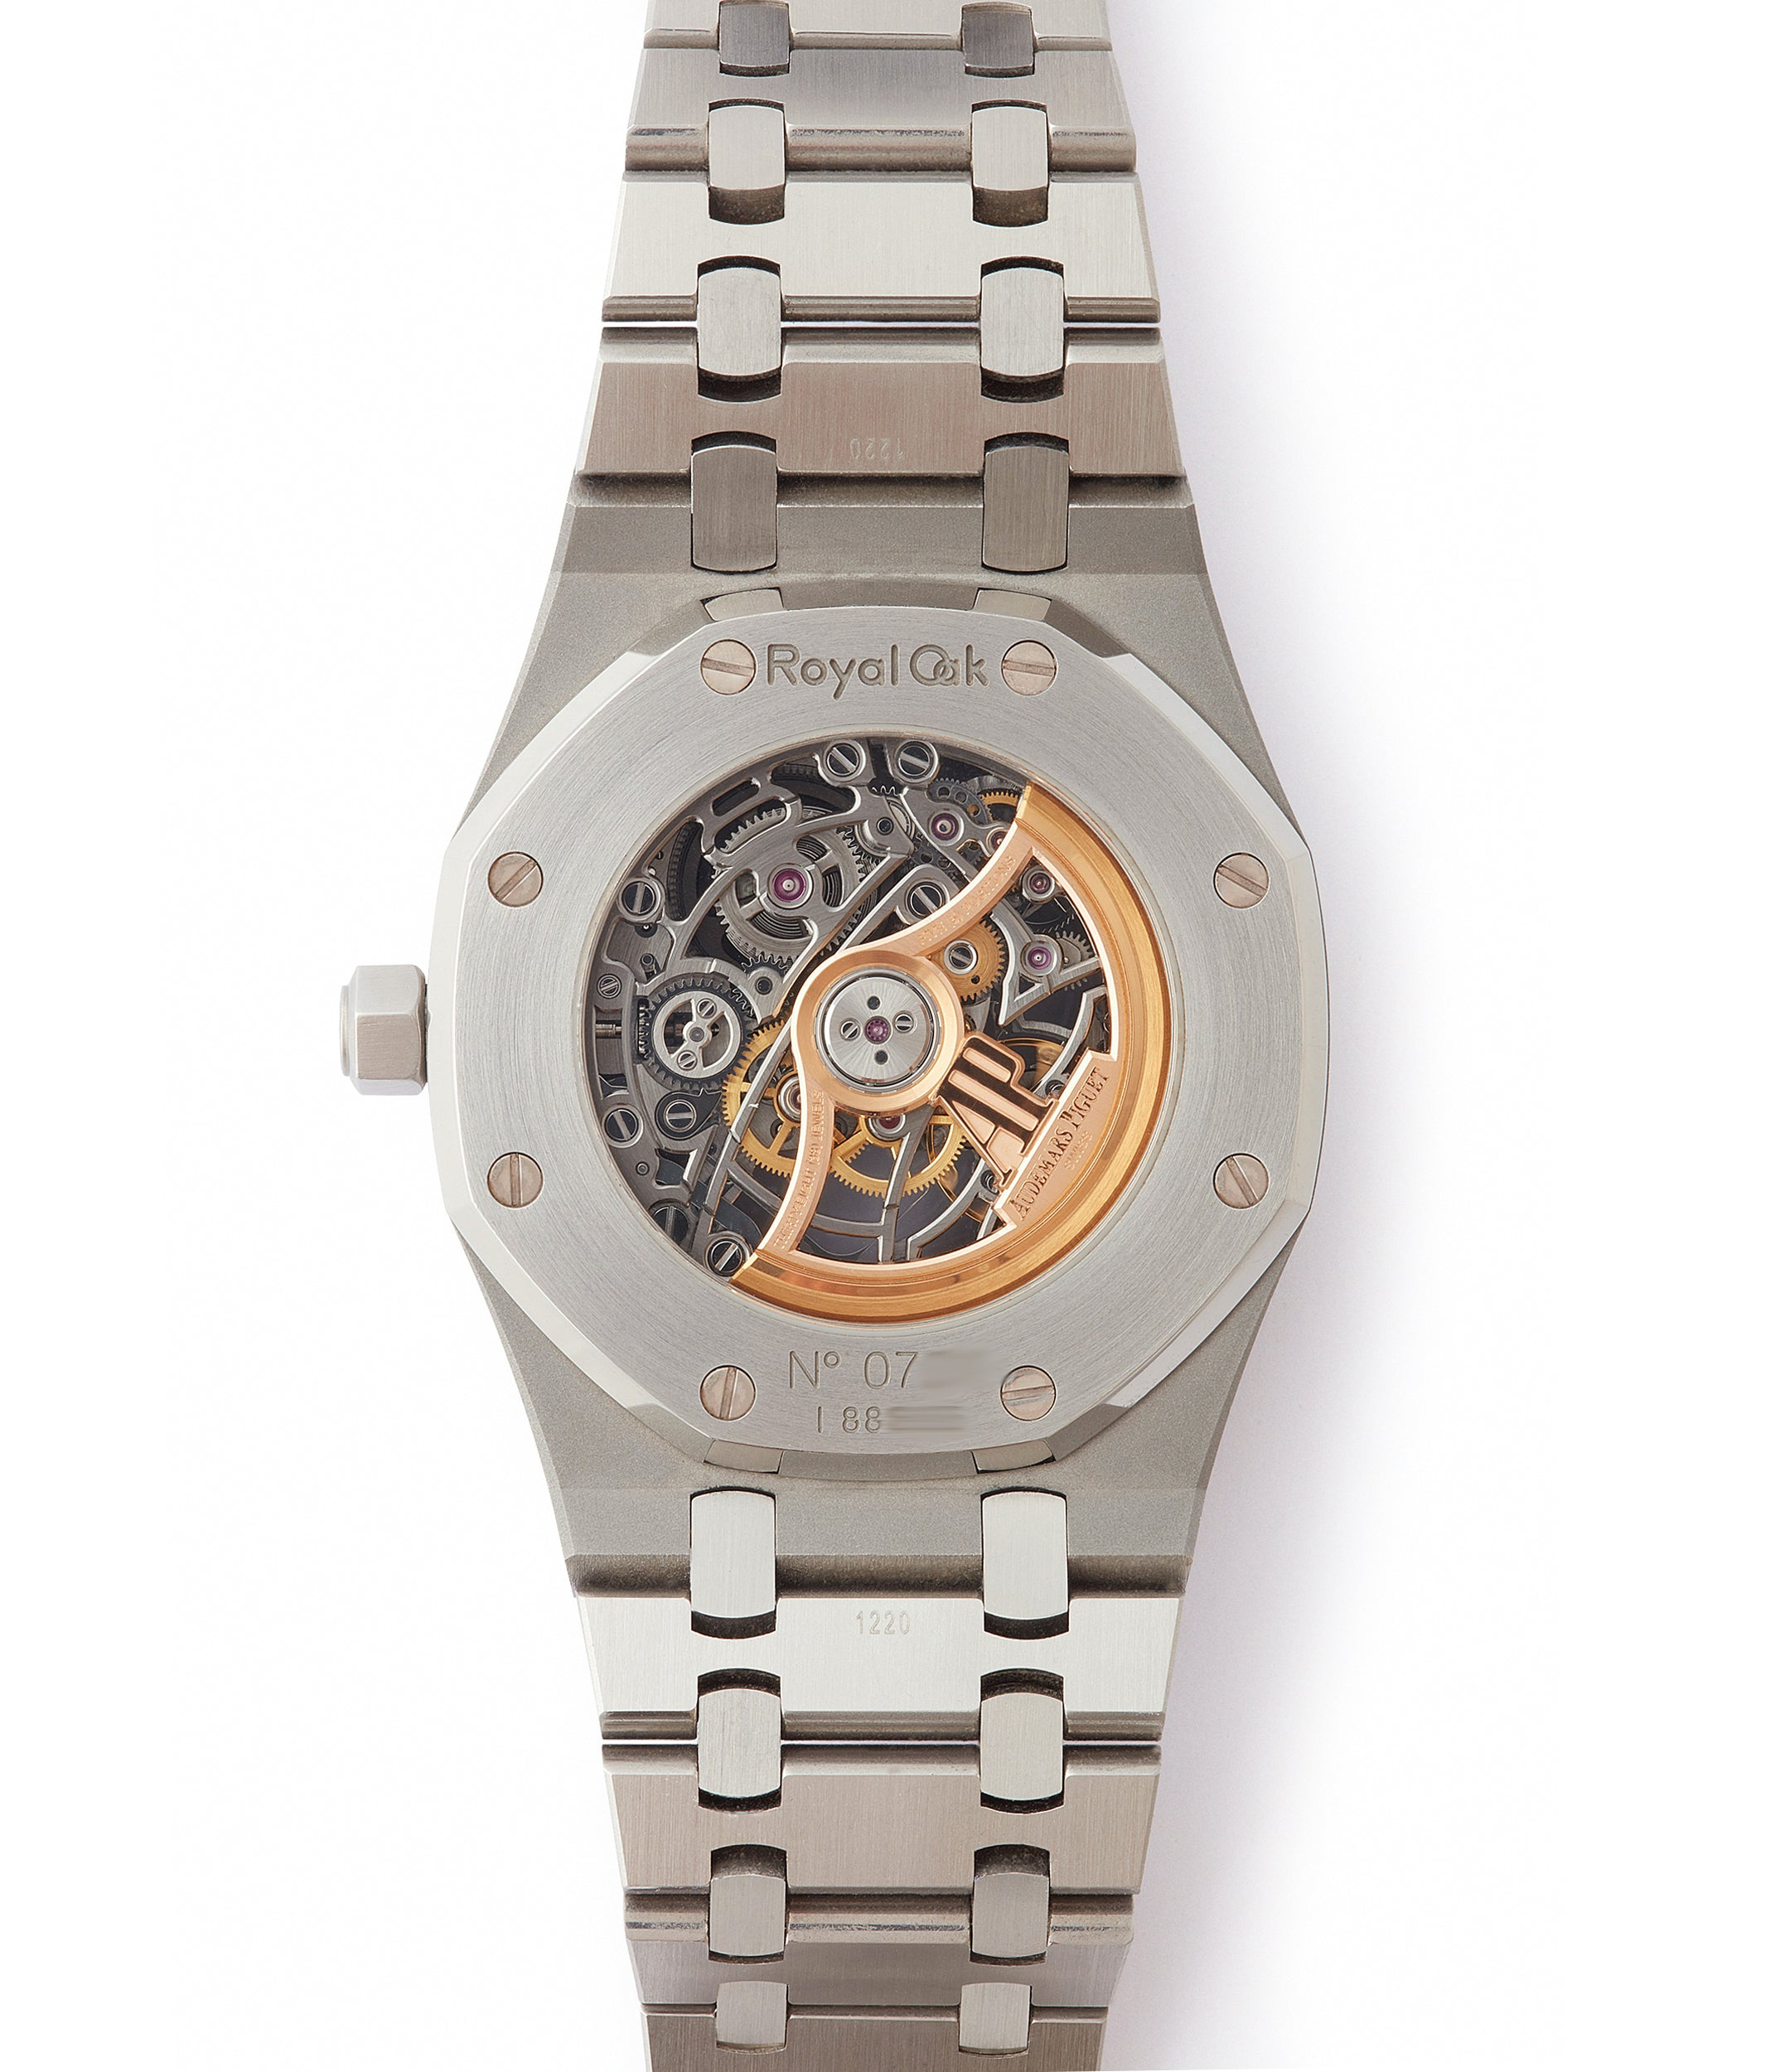 15305ST.OO.1220ST.01 Audemars Piguet Royal Oak skeletonised watch for sale online at A Collected Man London UK specialist of rare watches